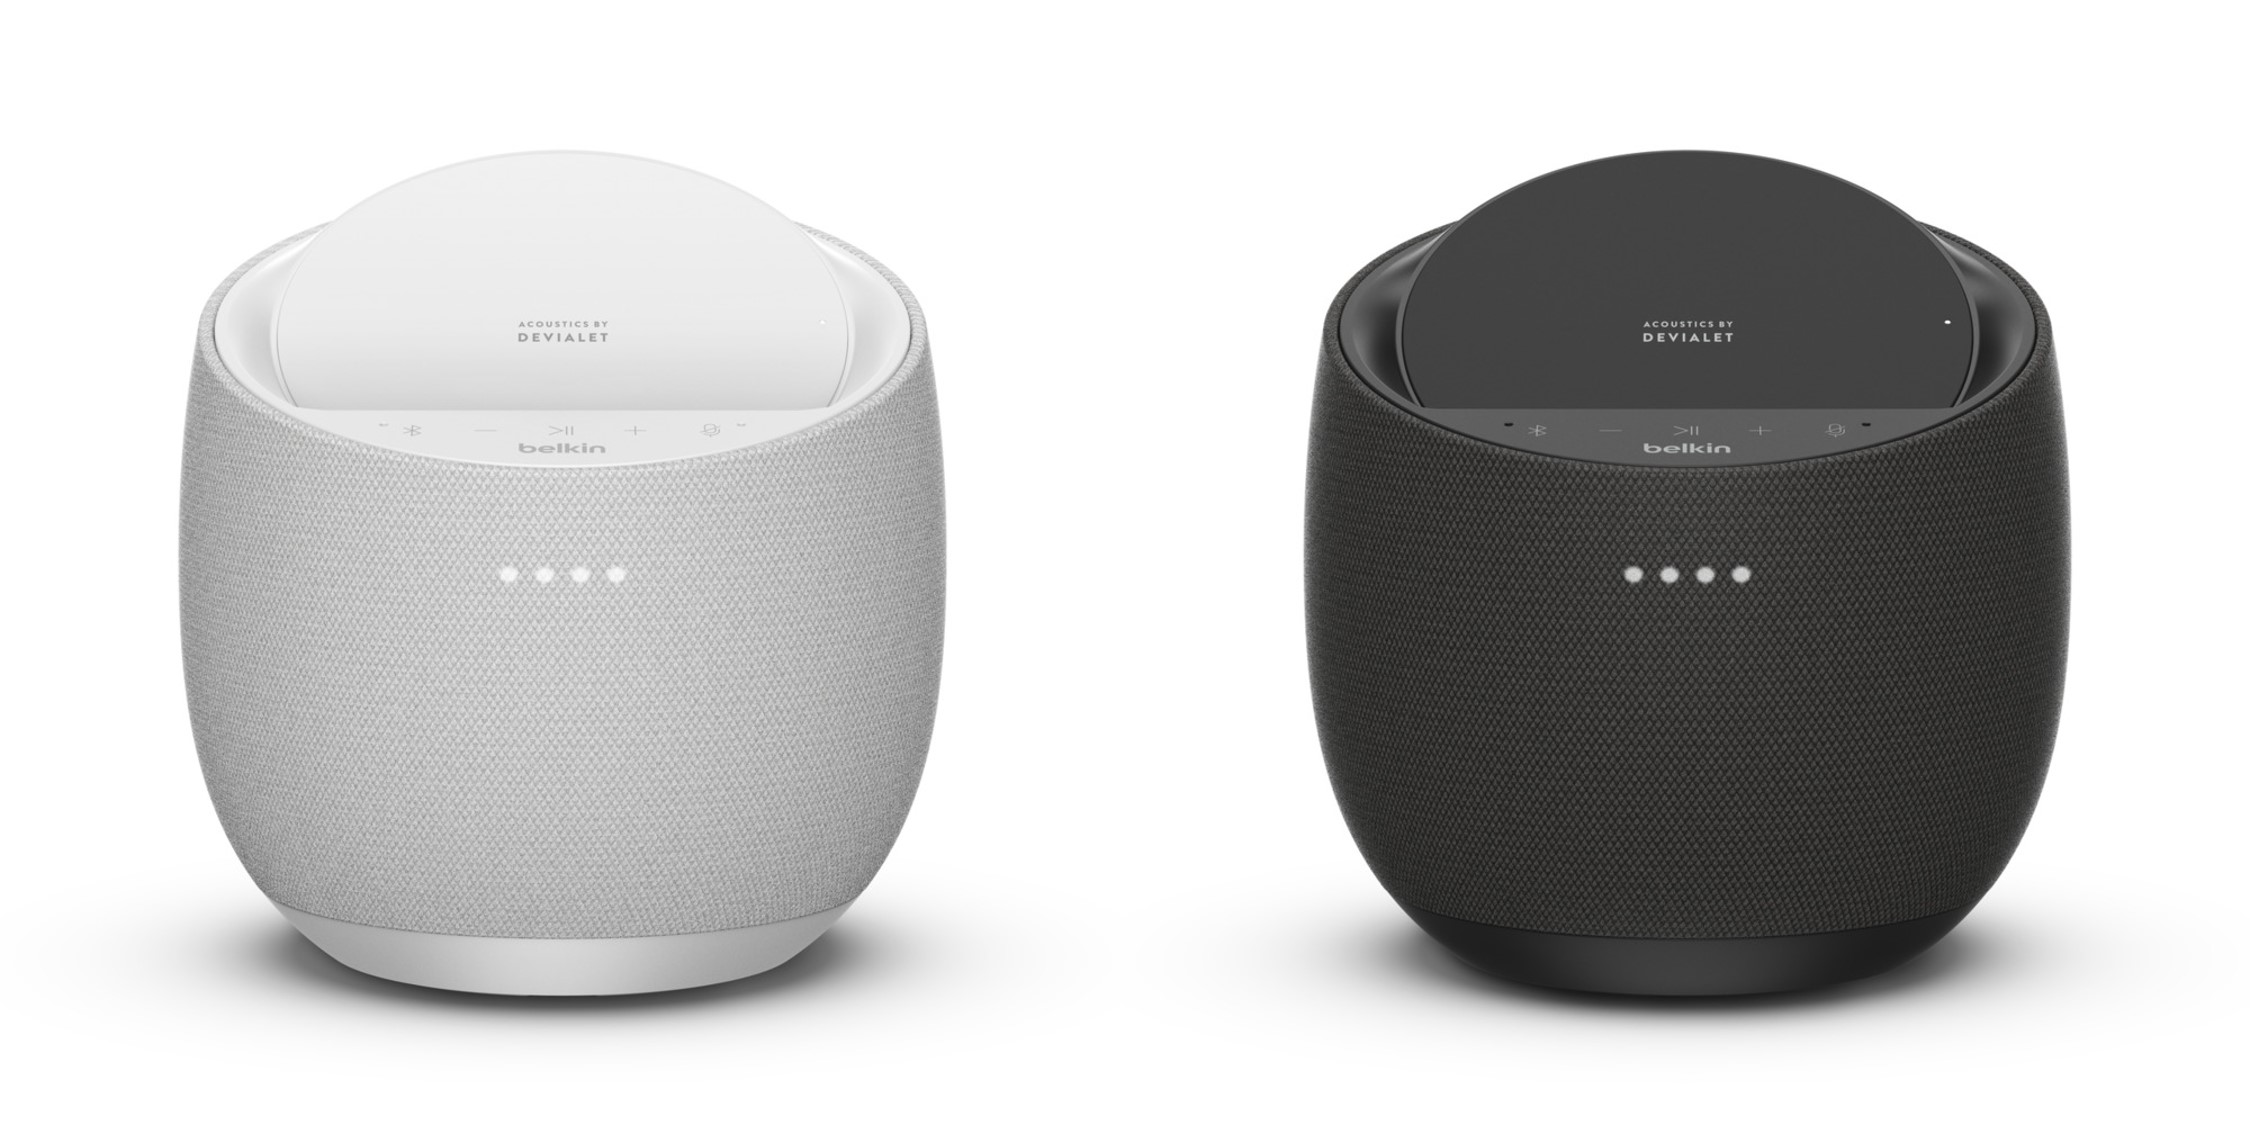 Belkin SOUNDFORM ELITE Hi-Fi